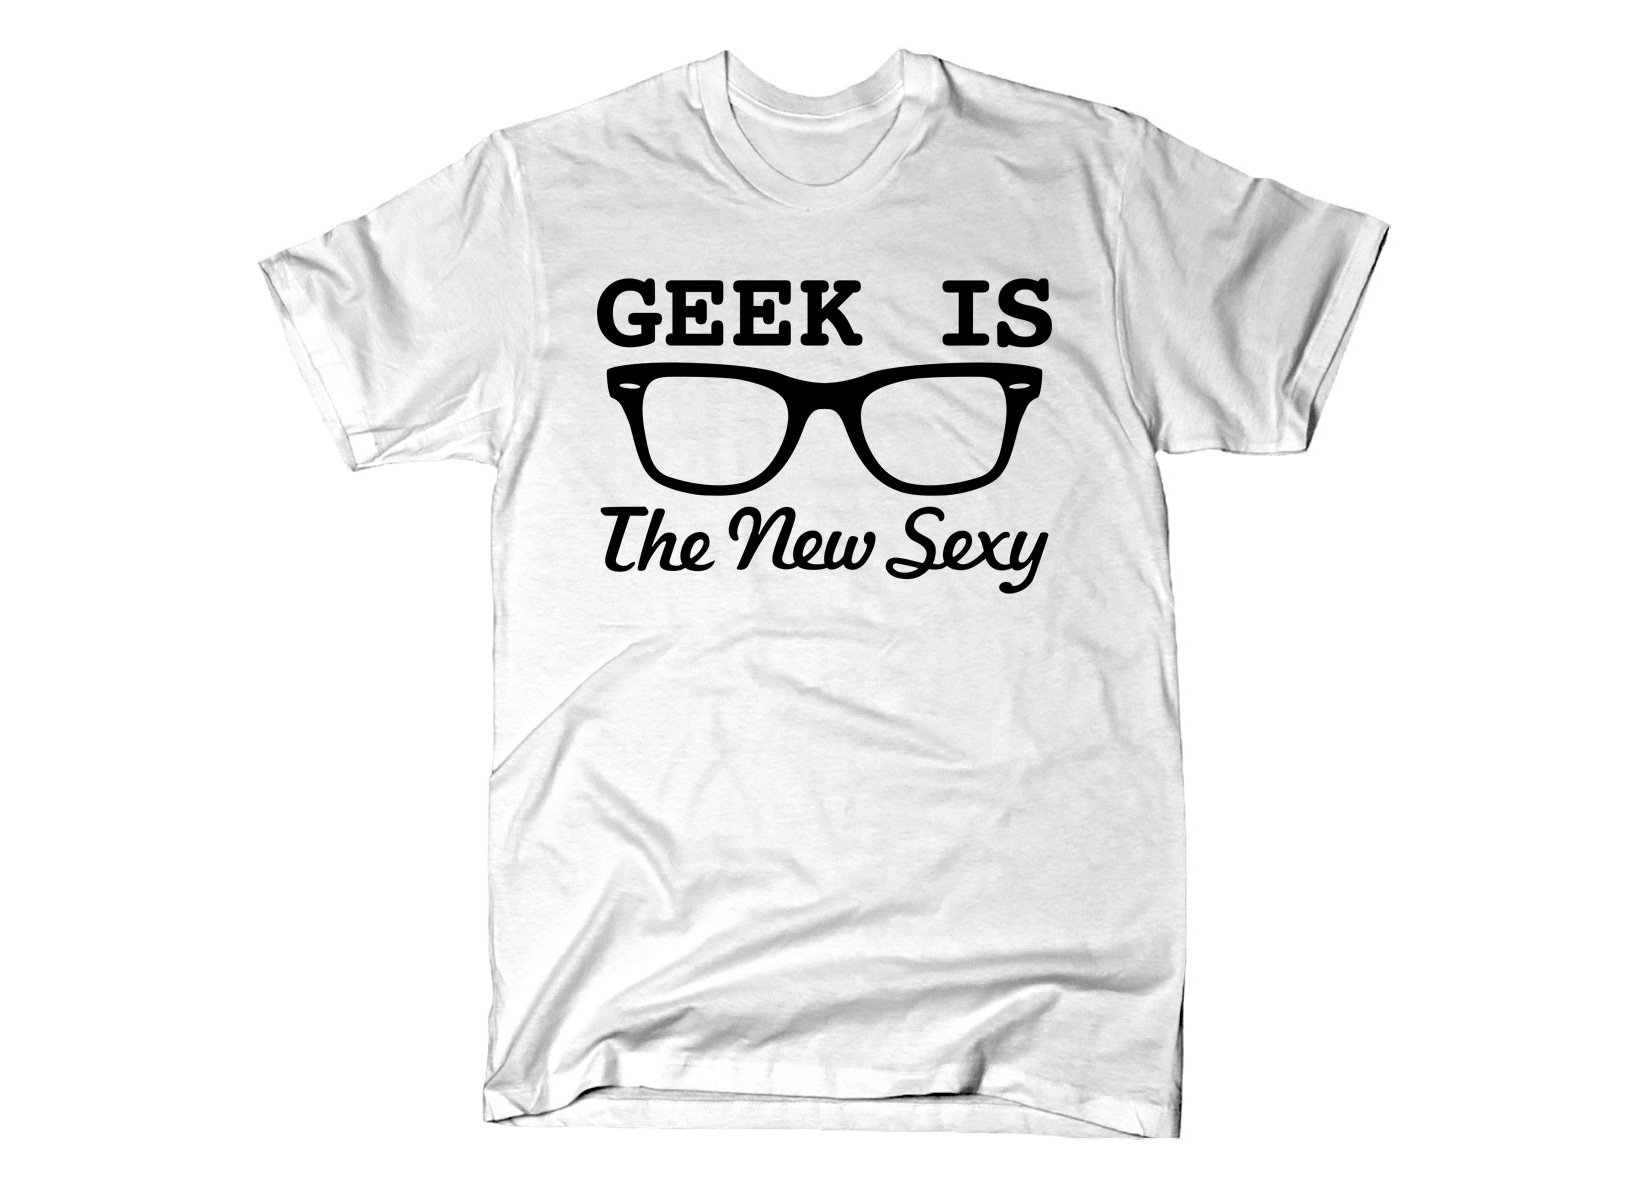 Geek Is The New Sexy on Mens T-Shirt